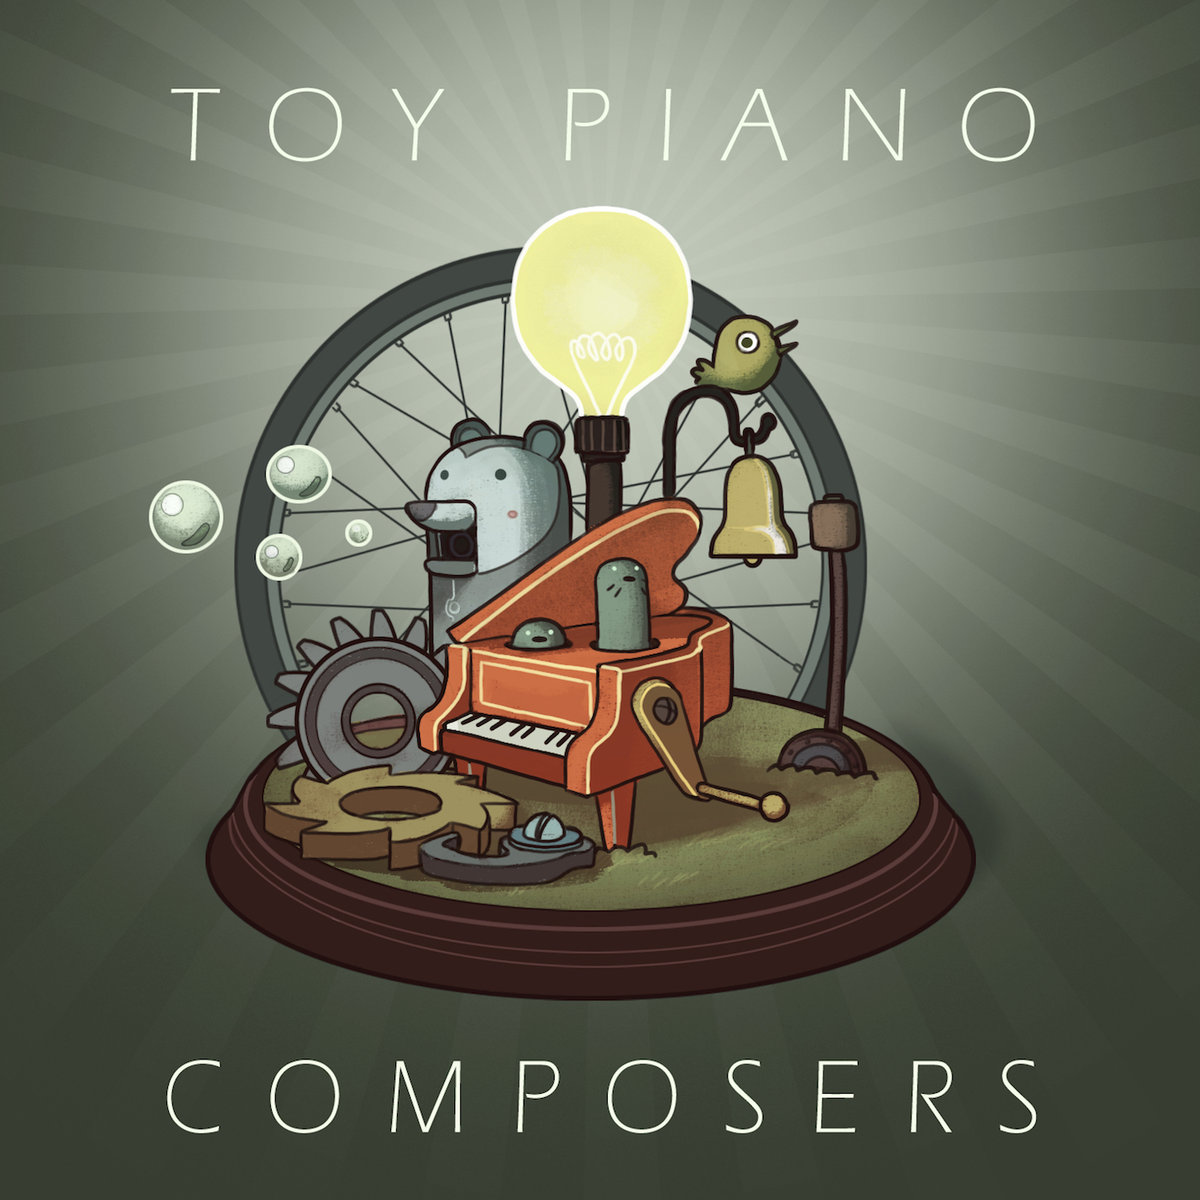 Toy Piano Composers